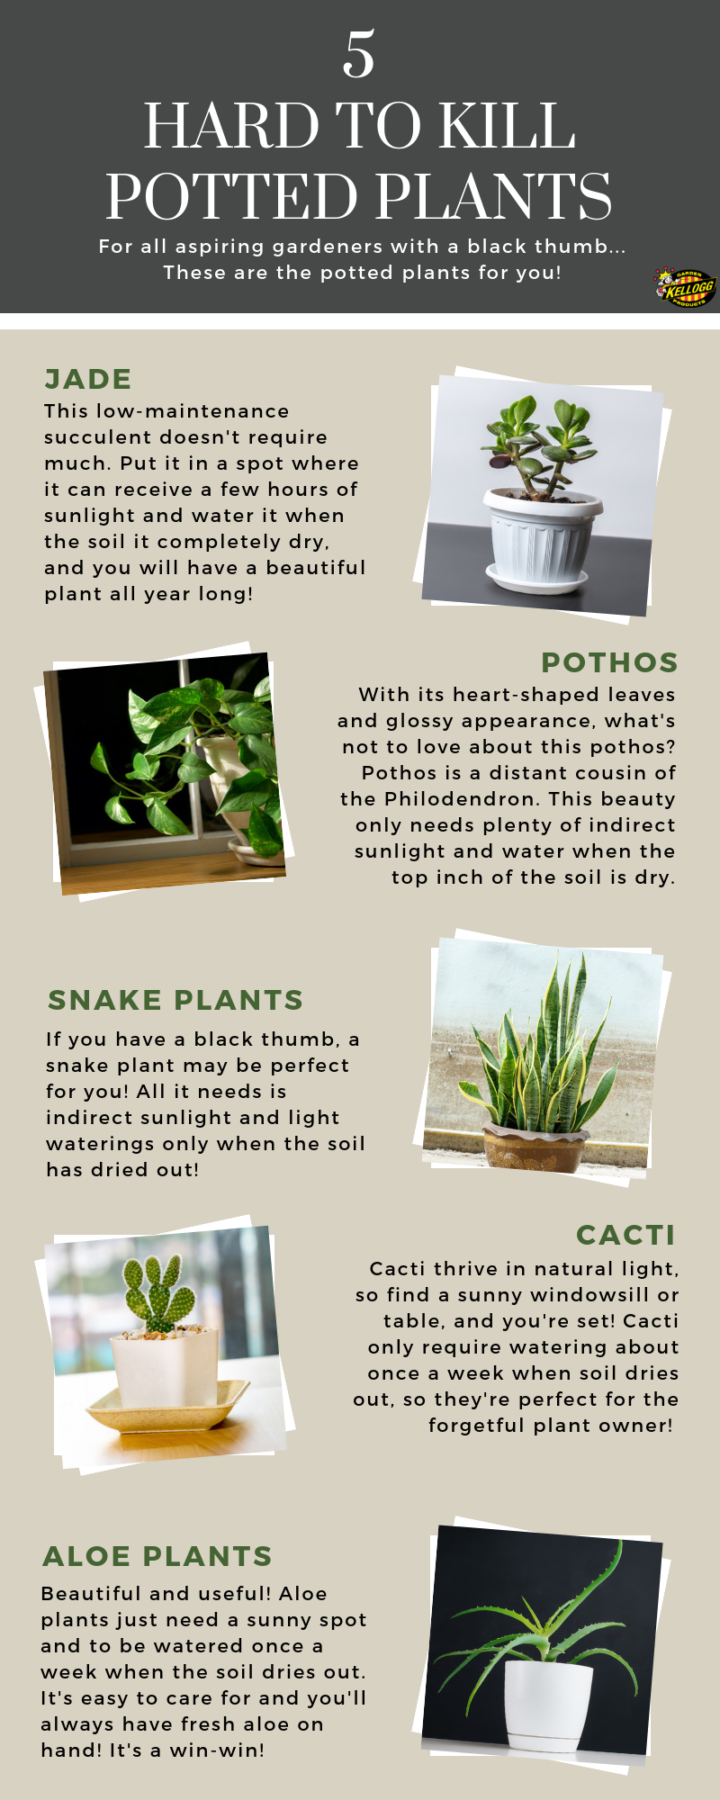 Hard to Kill Potted Plants